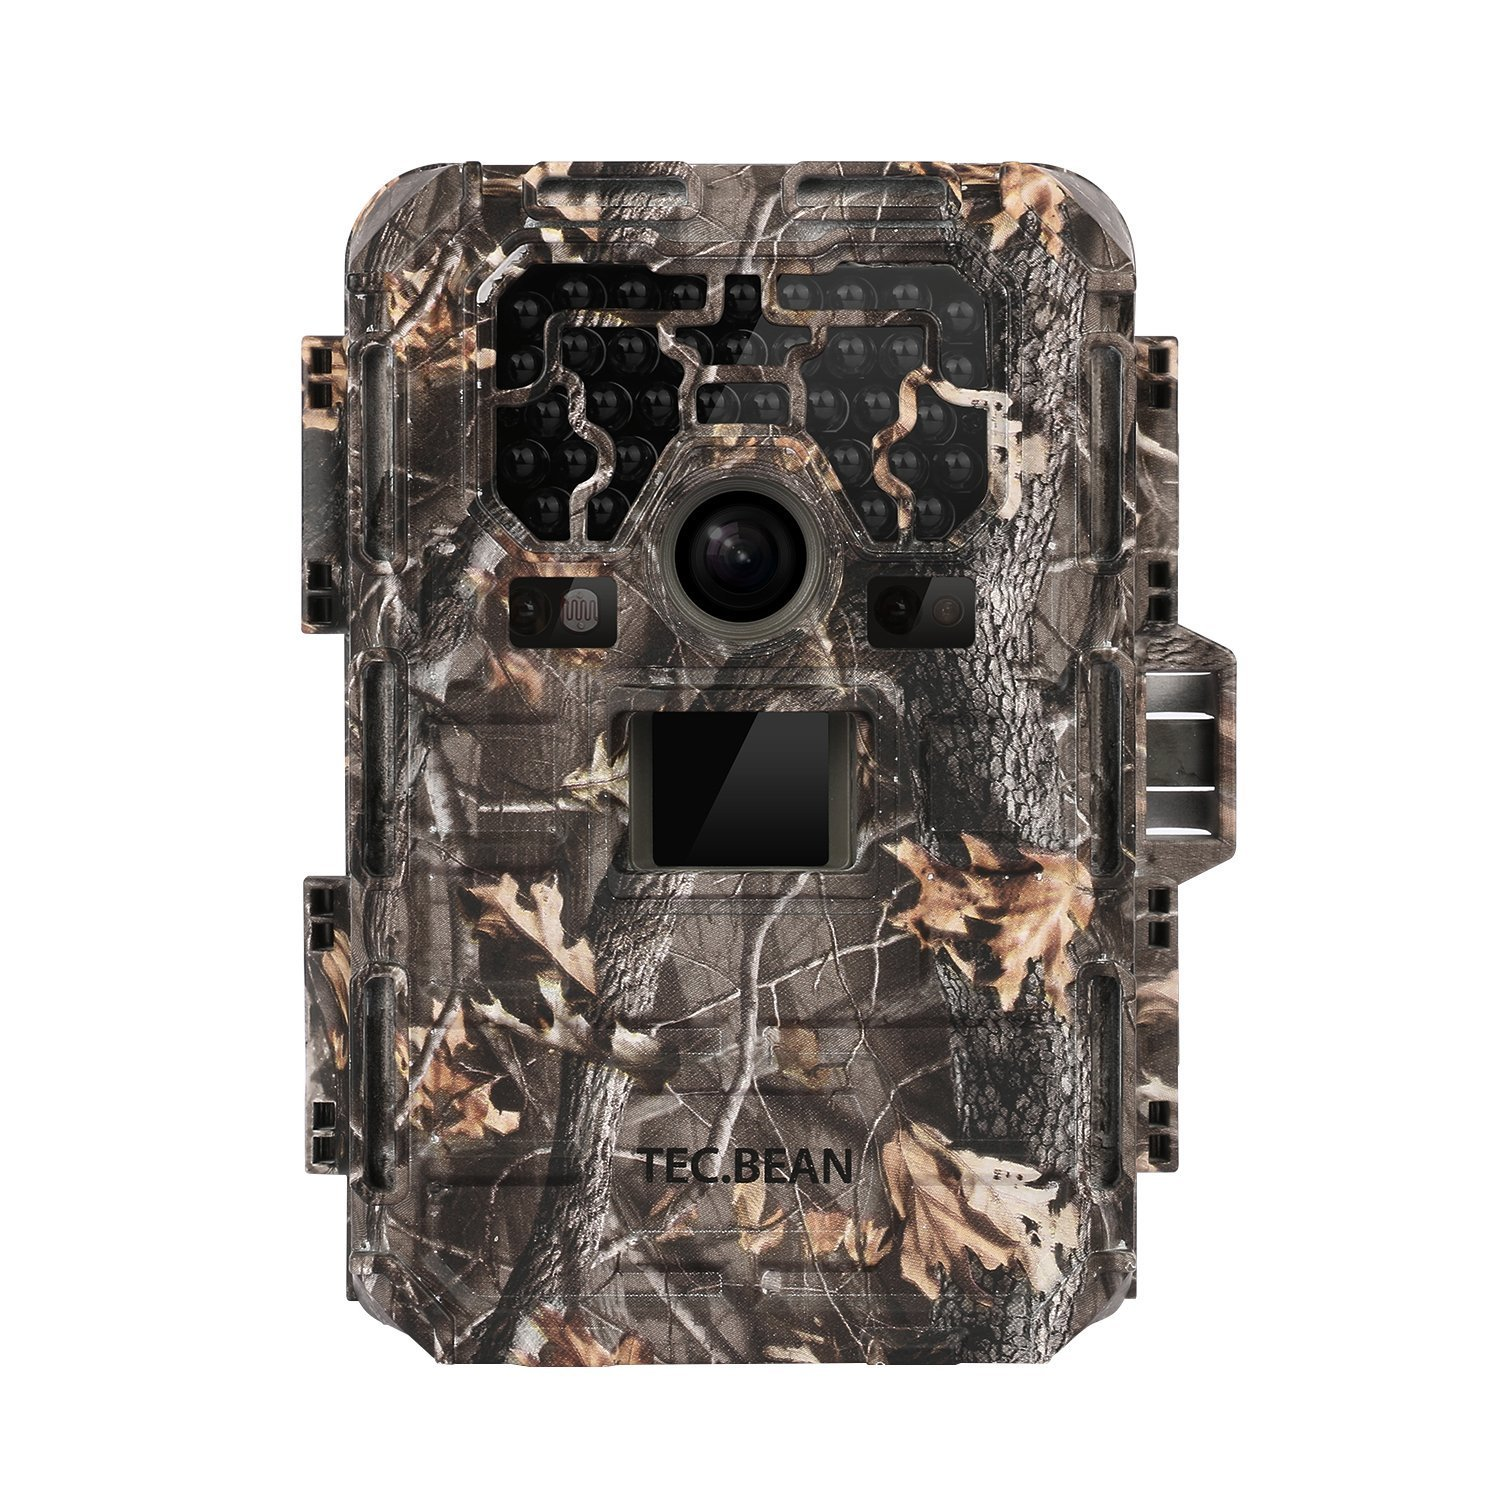 TEC.BEAN DB0826 Trail Game Camera – 12MP 1080P Full HD IP66 Waterproof Hunting Camera with night vision motion activated…